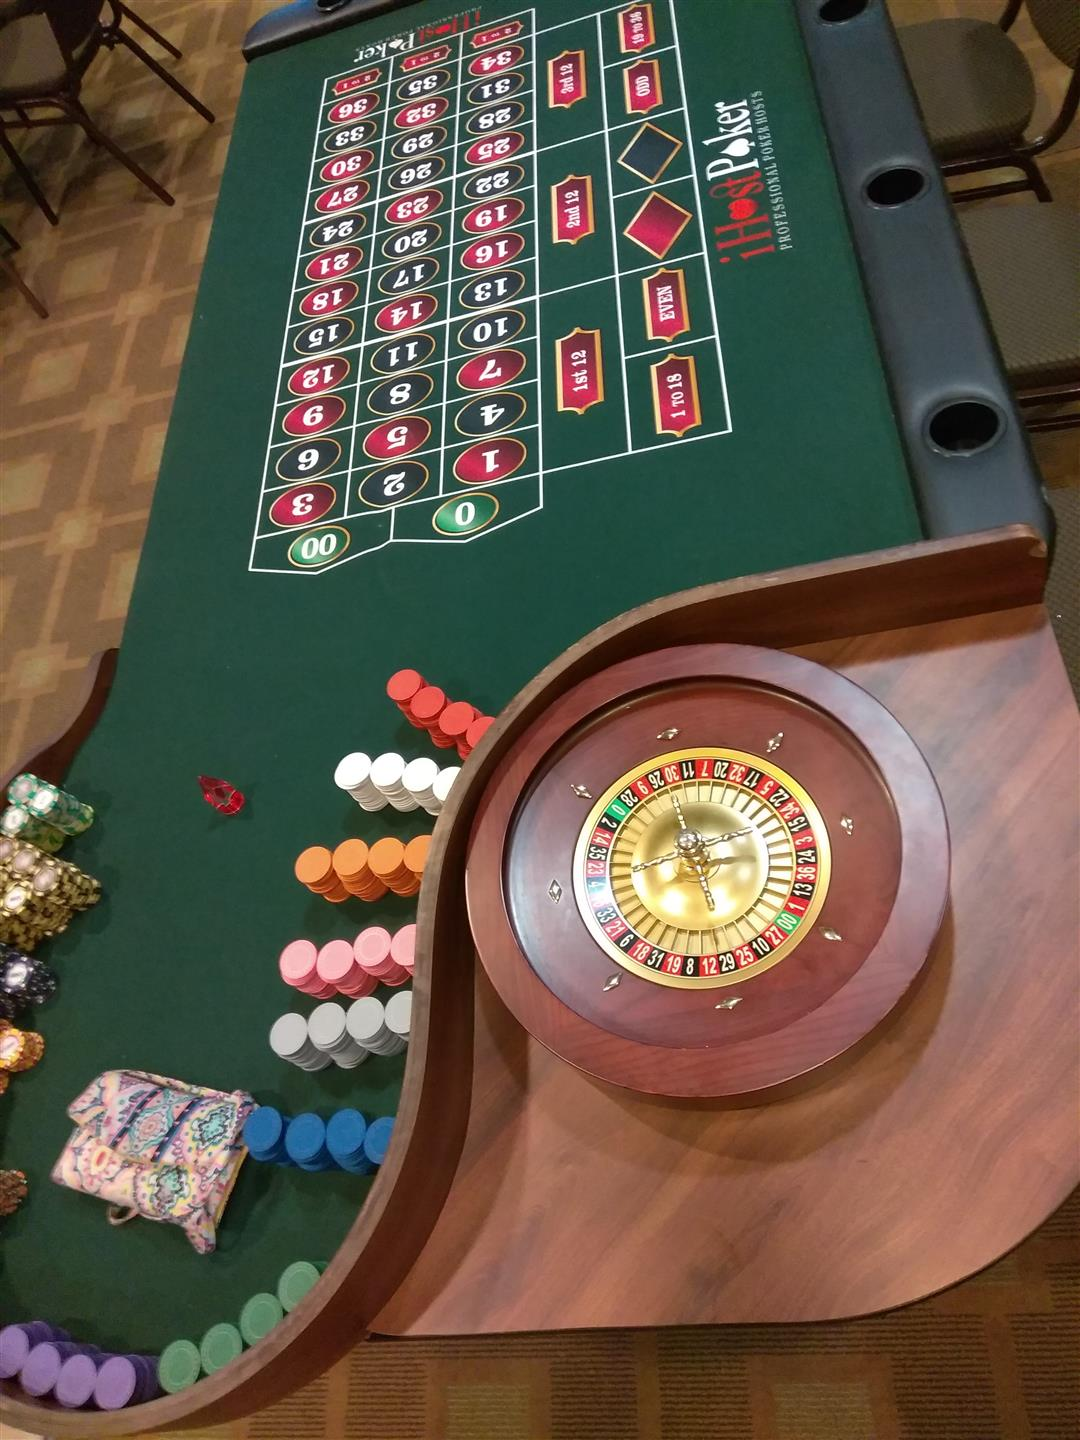 roulette table at casino themed party